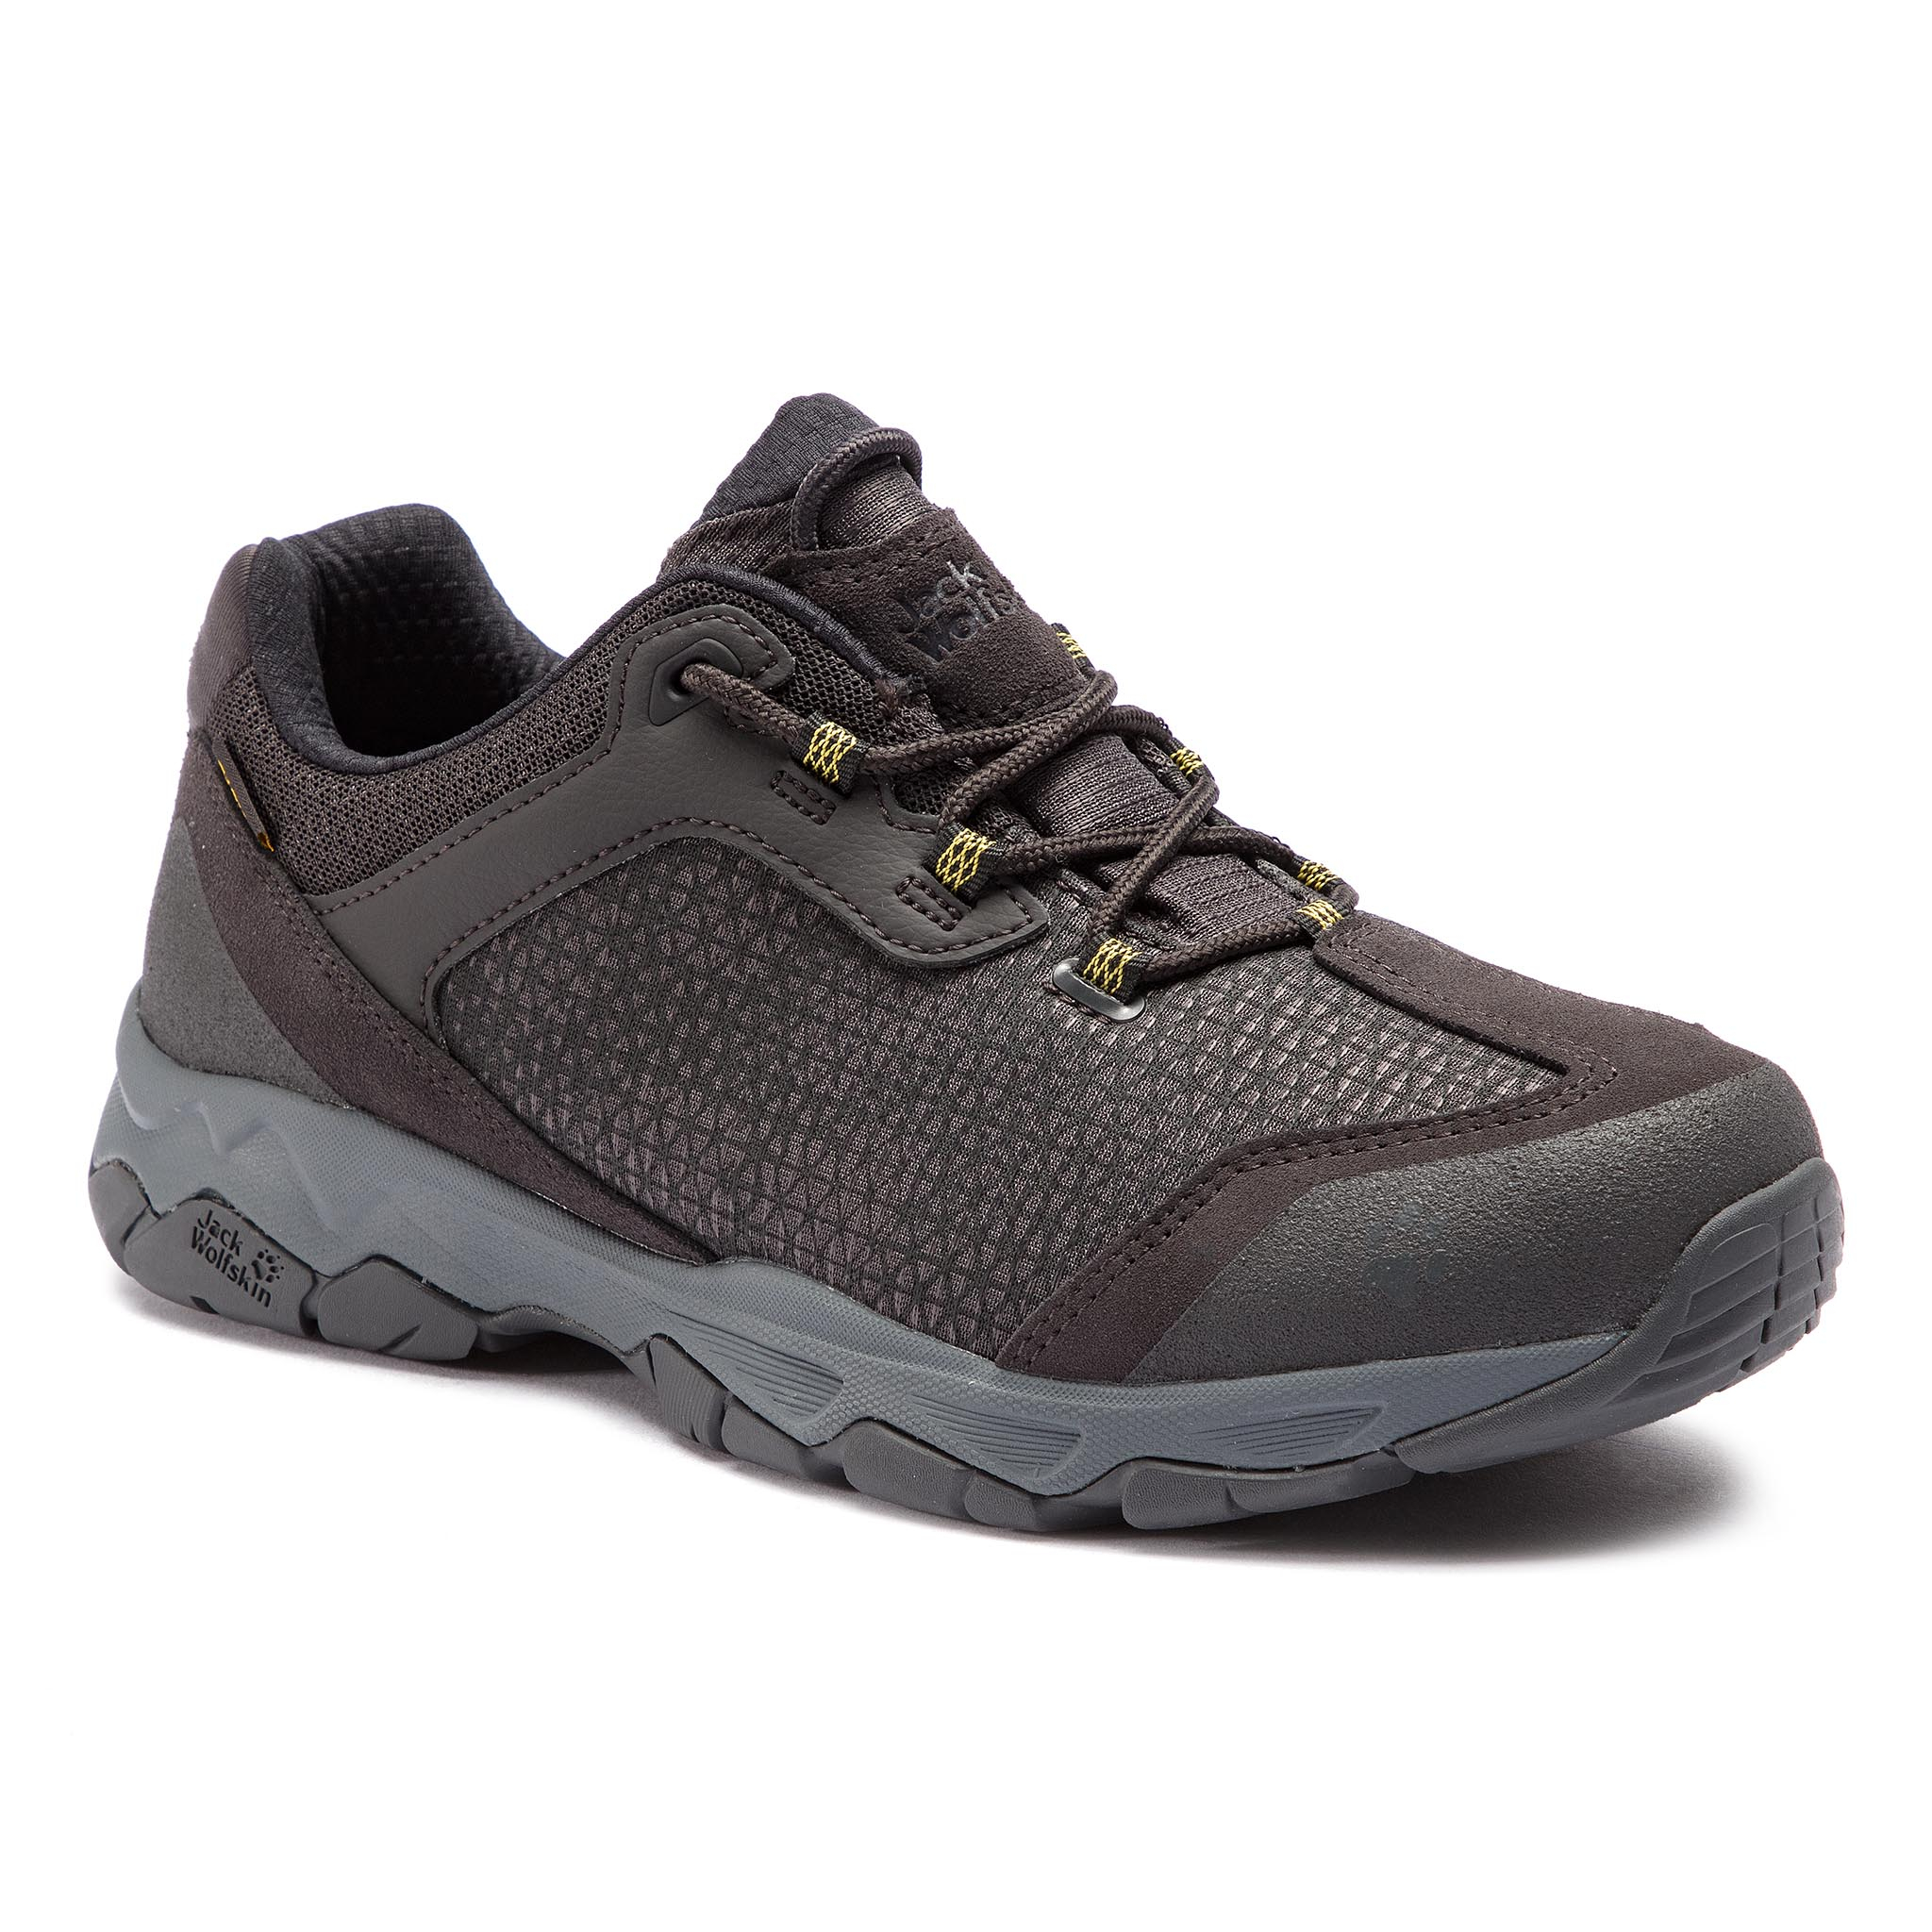 Chaussures Homme Outdoor CHAUSSURES tritOO